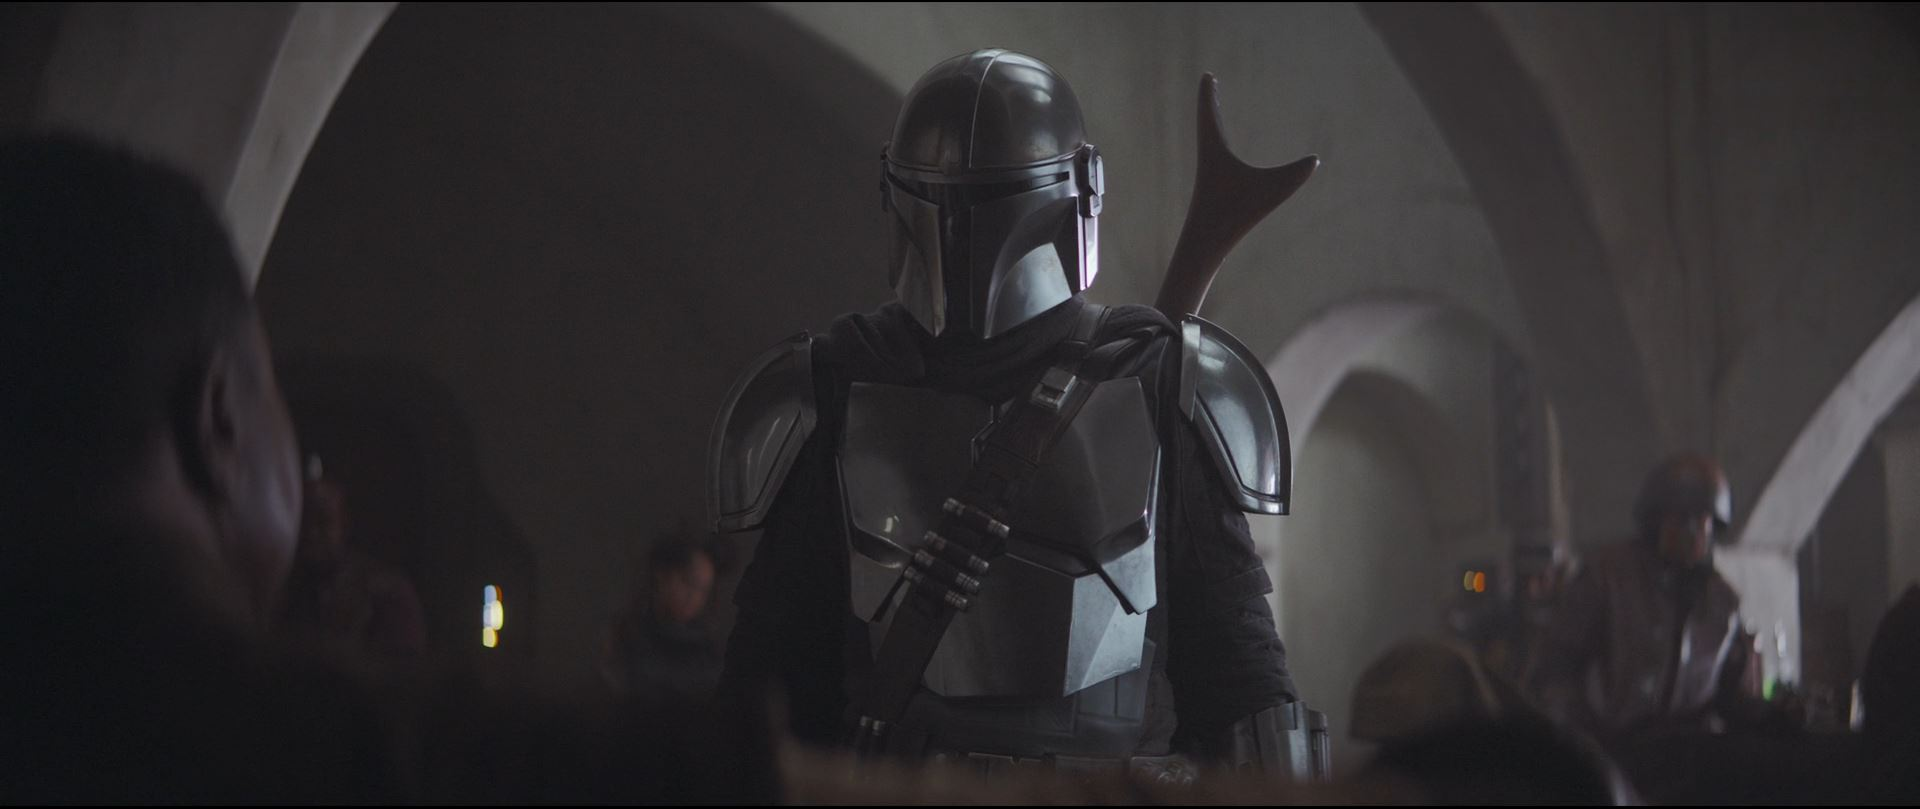 The Mandalorian - 2020 Most Anticipated Sci-Fi Series The Mandalorian Chapter 3 The Sin Review